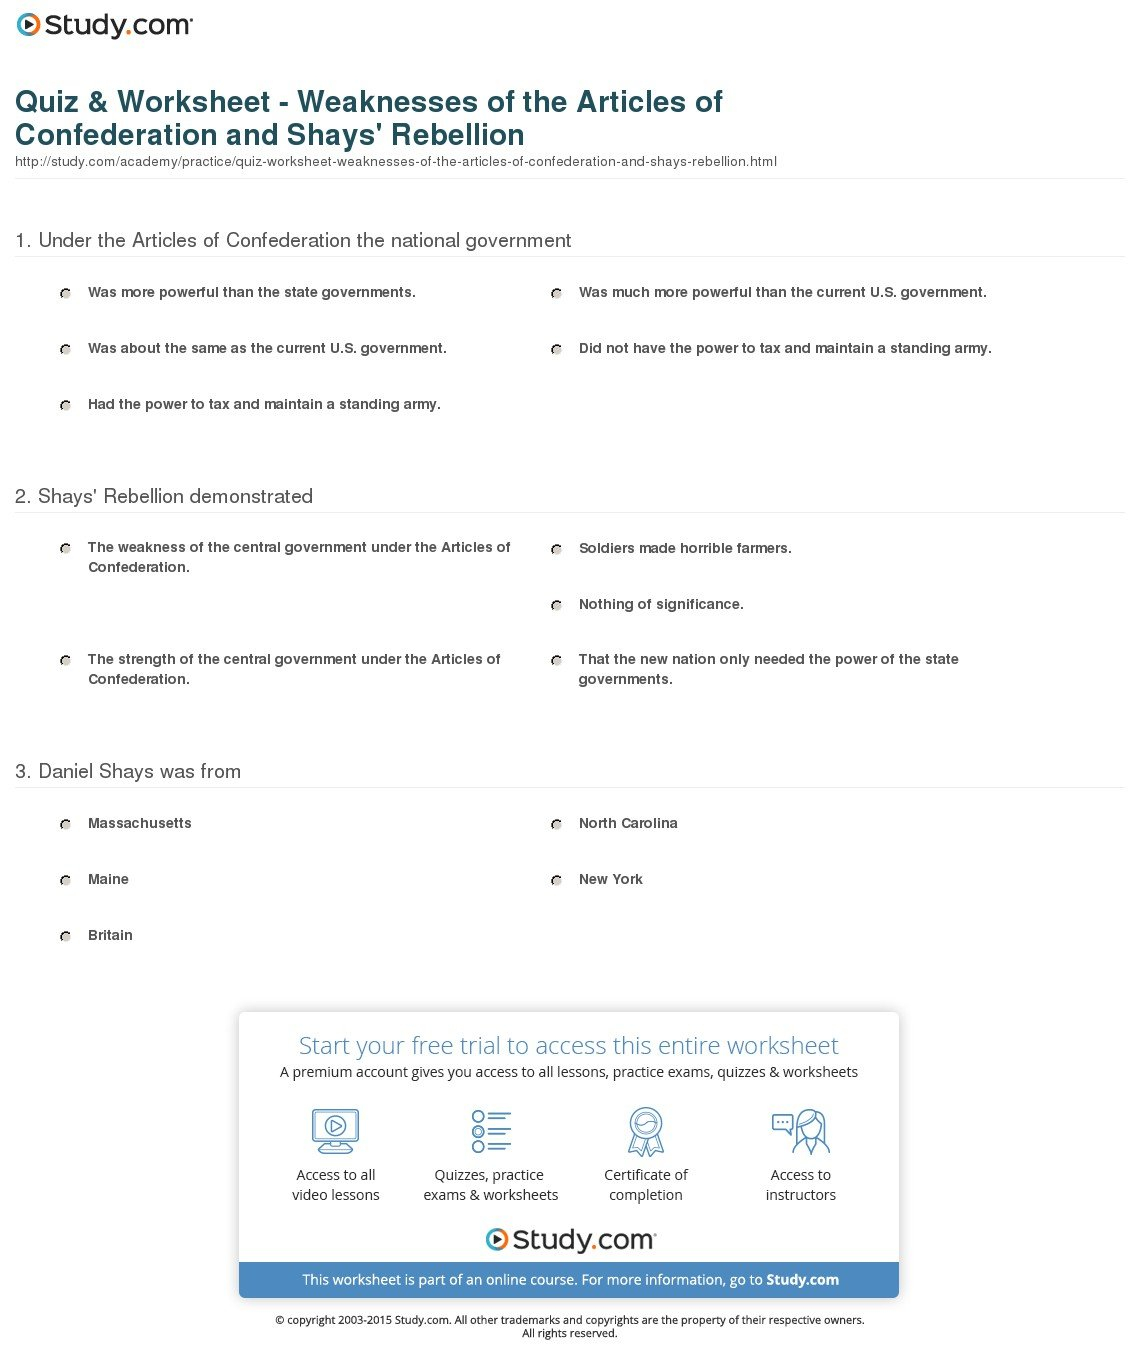 Weaknesses Of The Articles Of Confederation Worksheet